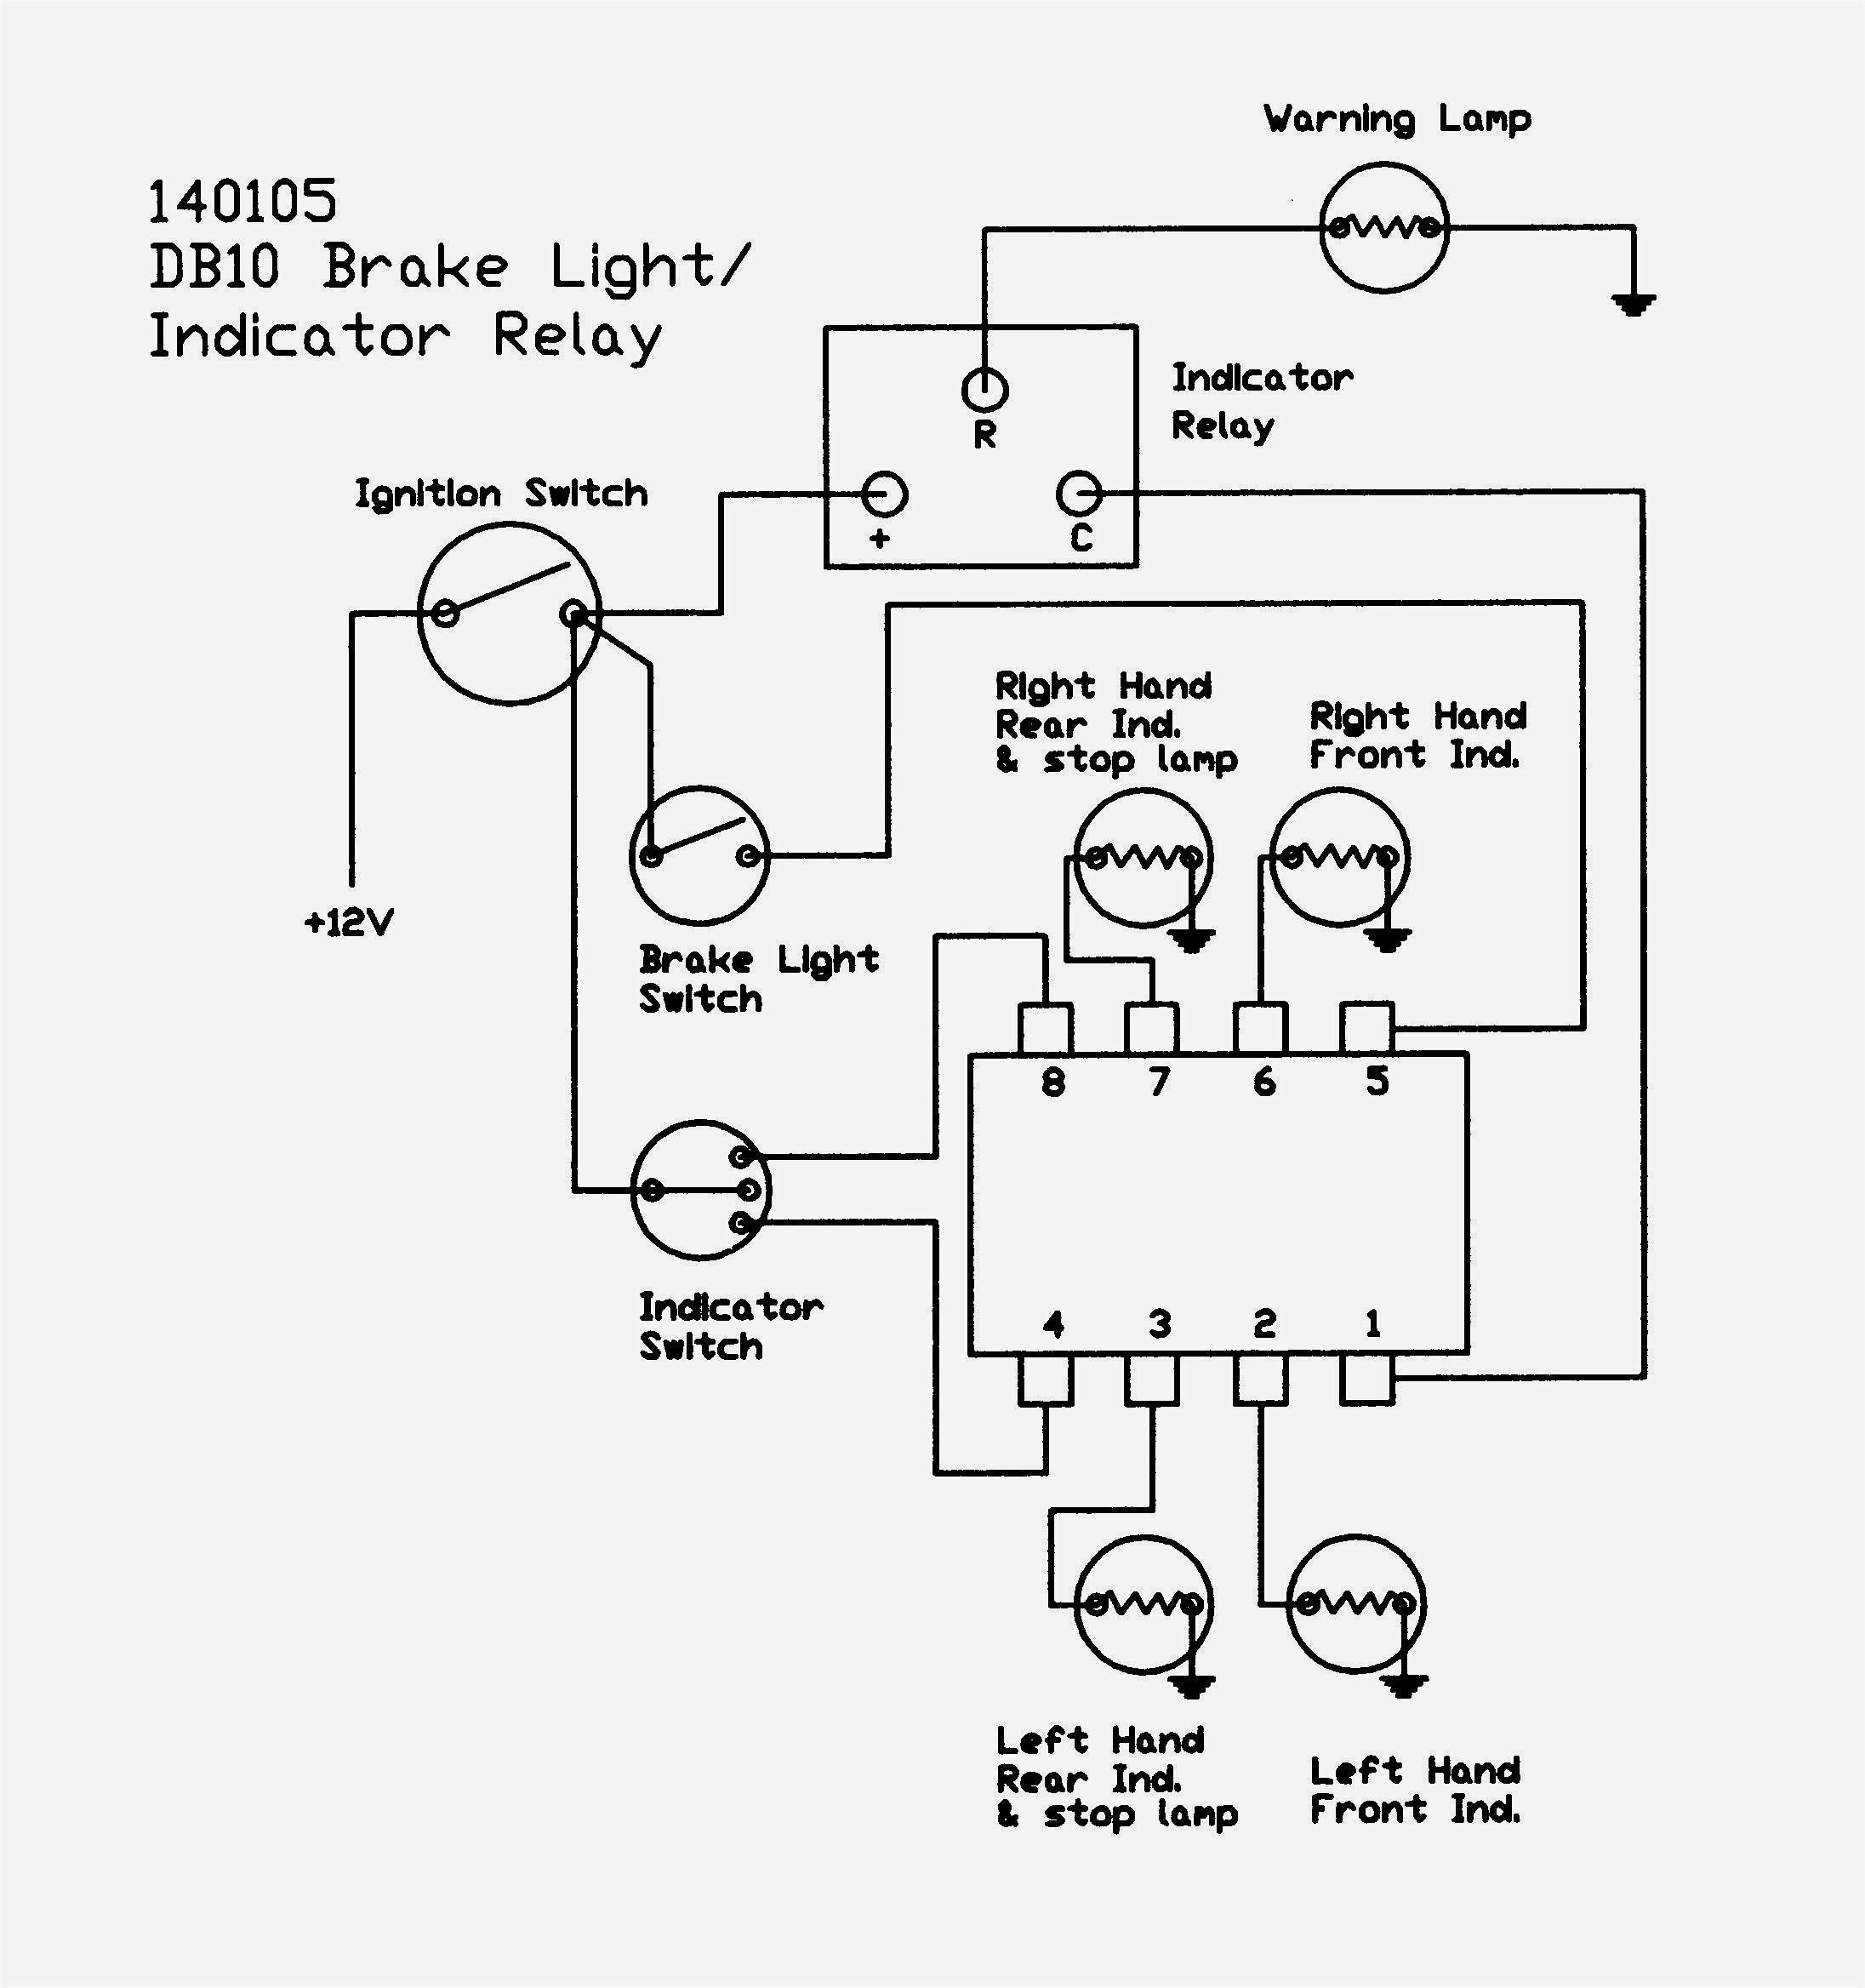 Unique Wiring Diagram For Outdoor Motion Detector Light Diagrams Digramssample Diagramimages Wirin Light Switch Wiring Thermostat Wiring Ceiling Fan Switch